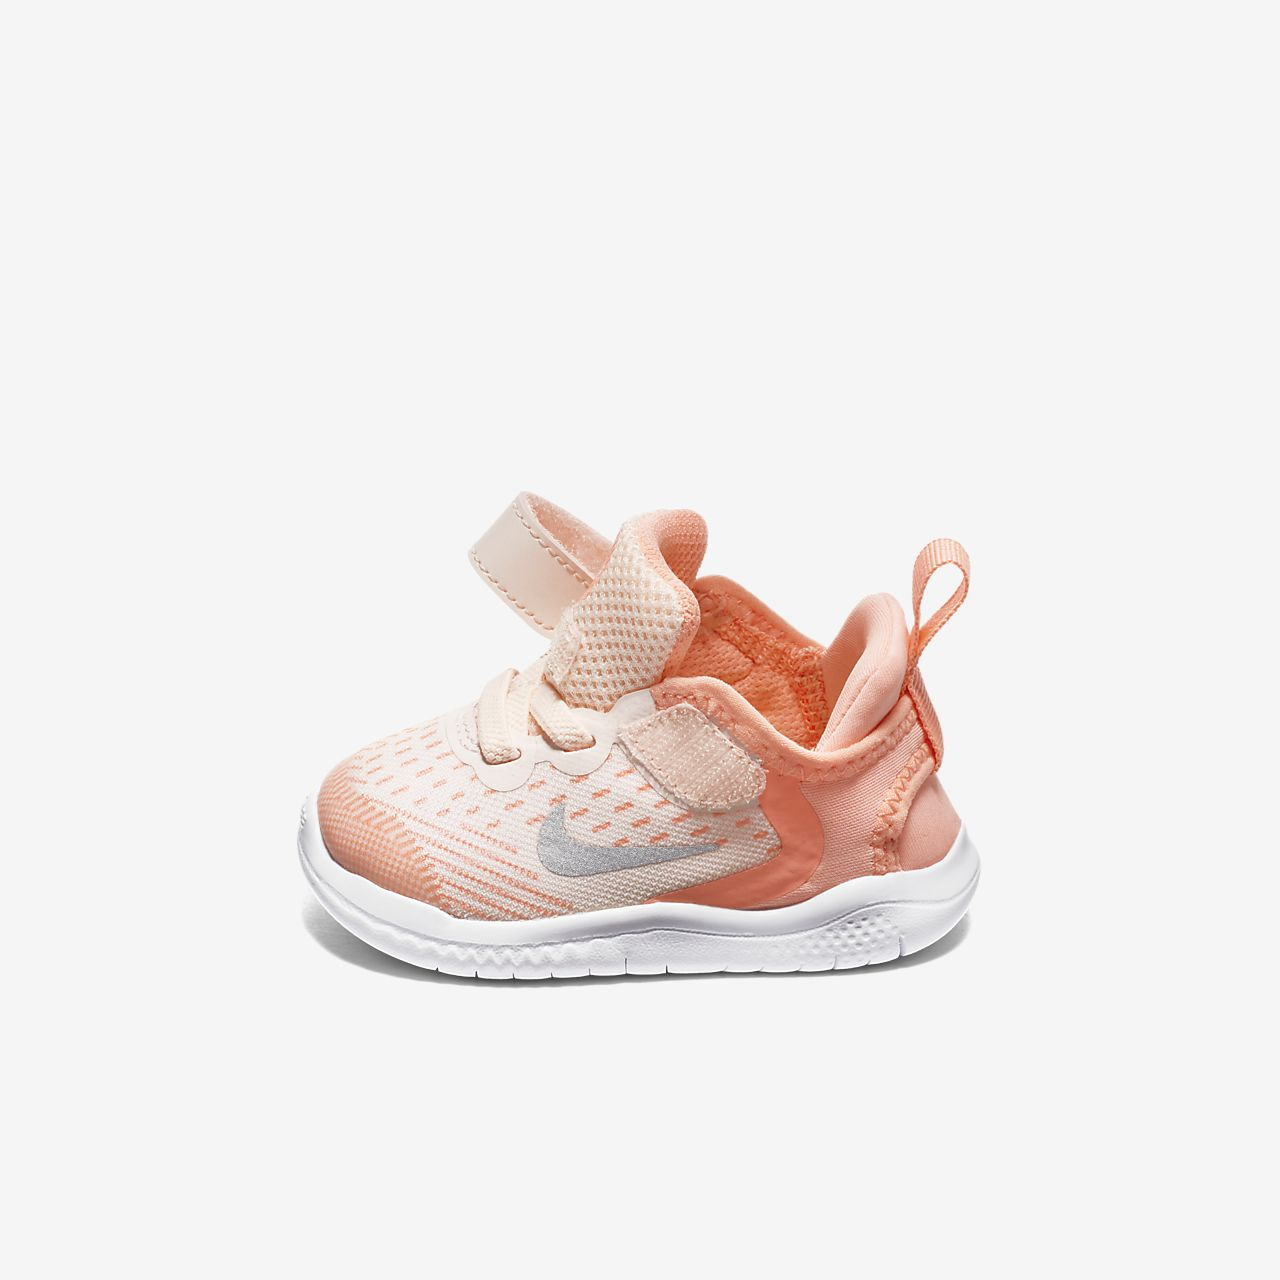 sports shoes 6278a c85c6 ... Nike Free RN 2018 Baby amp Toddler Shoe